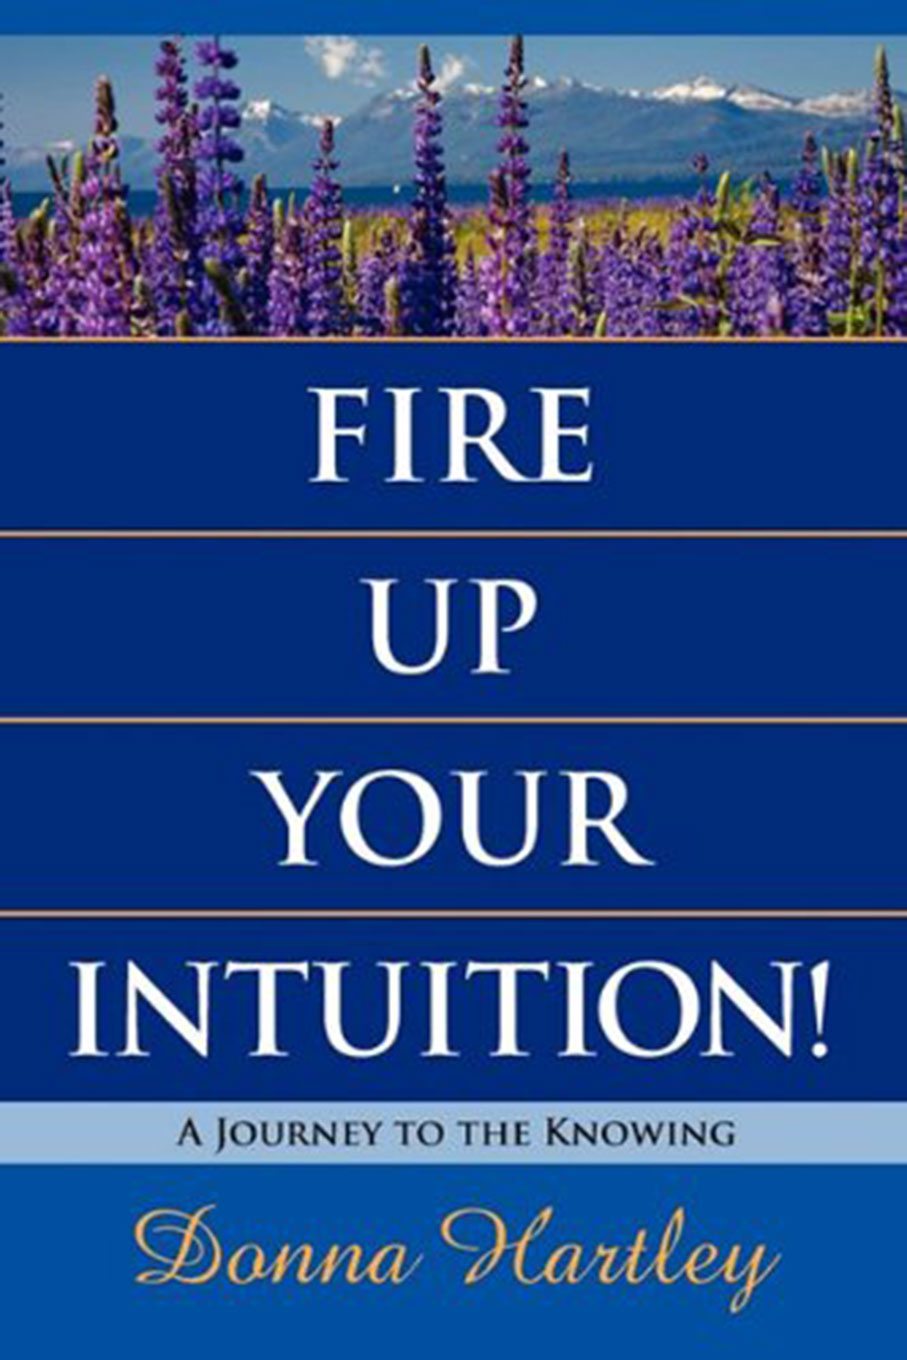 Fire Up Your Intuition!